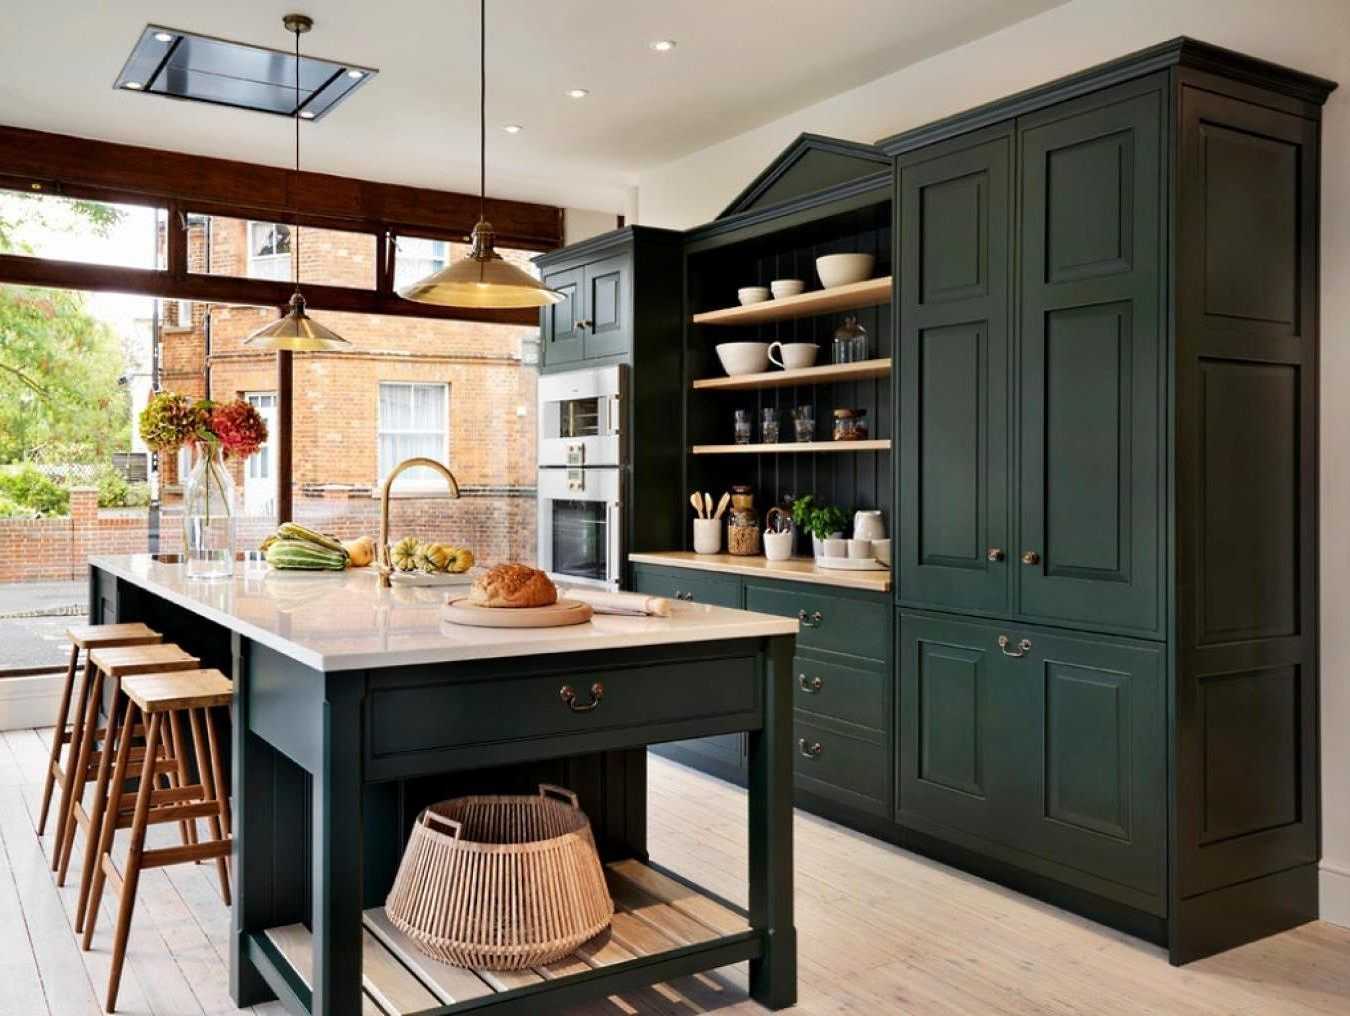 image result for green stained cabinets green kitchen cabinets dark green kitchen interior on kitchen interior green id=85451